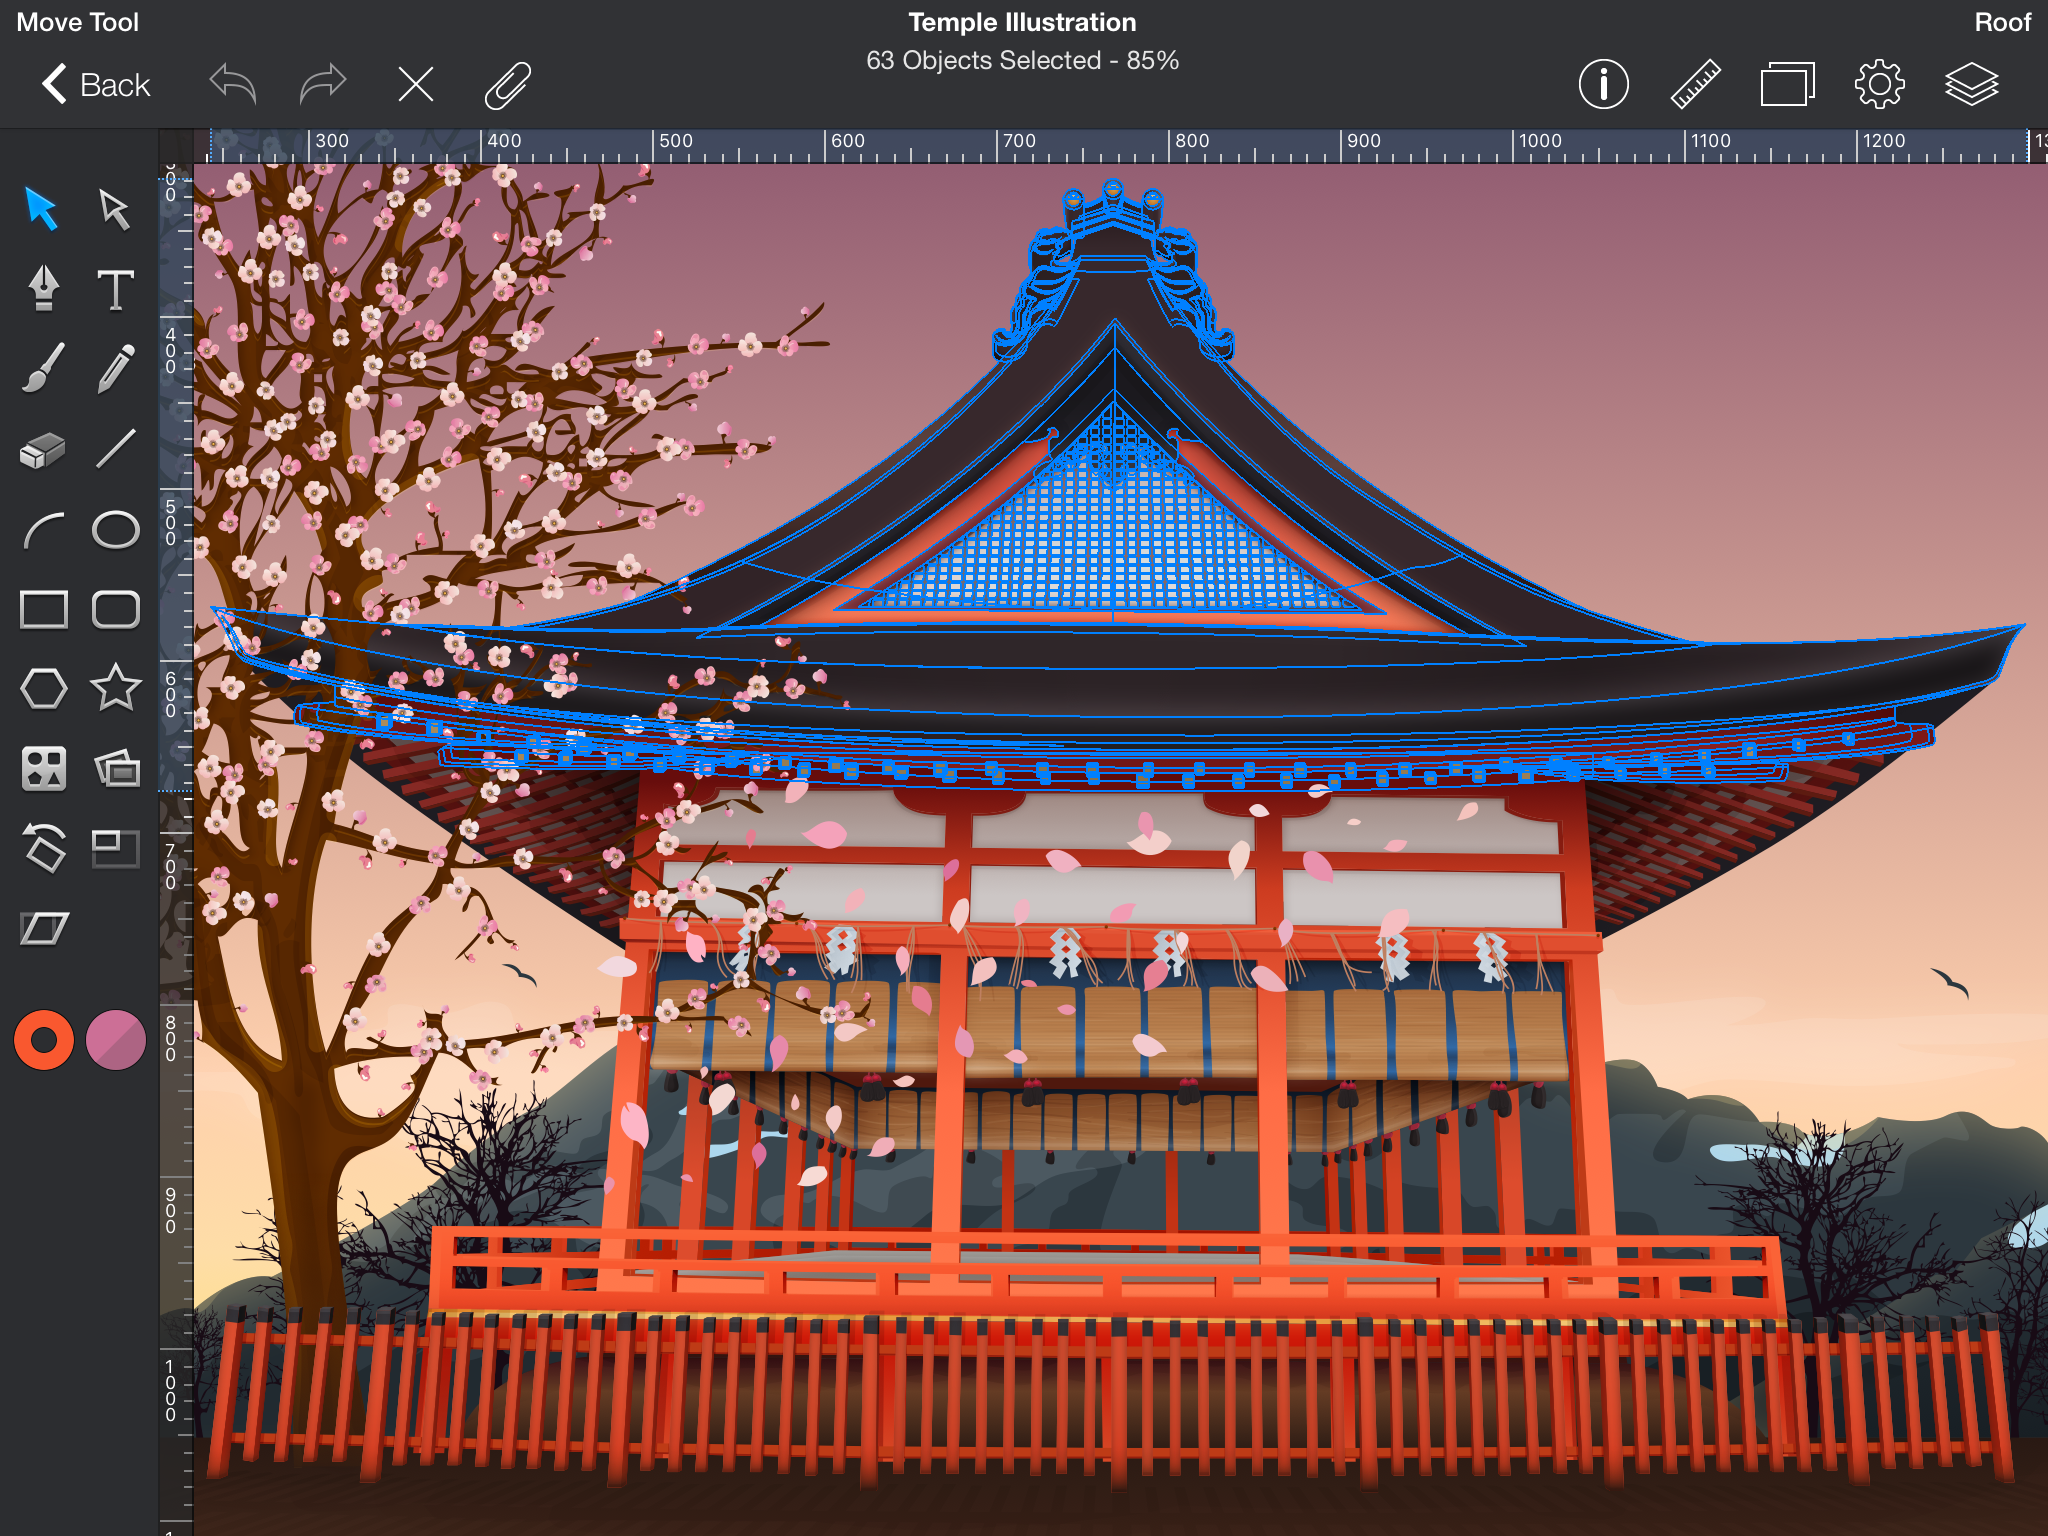 Drawing of a Japanese-style building on an iPad screen